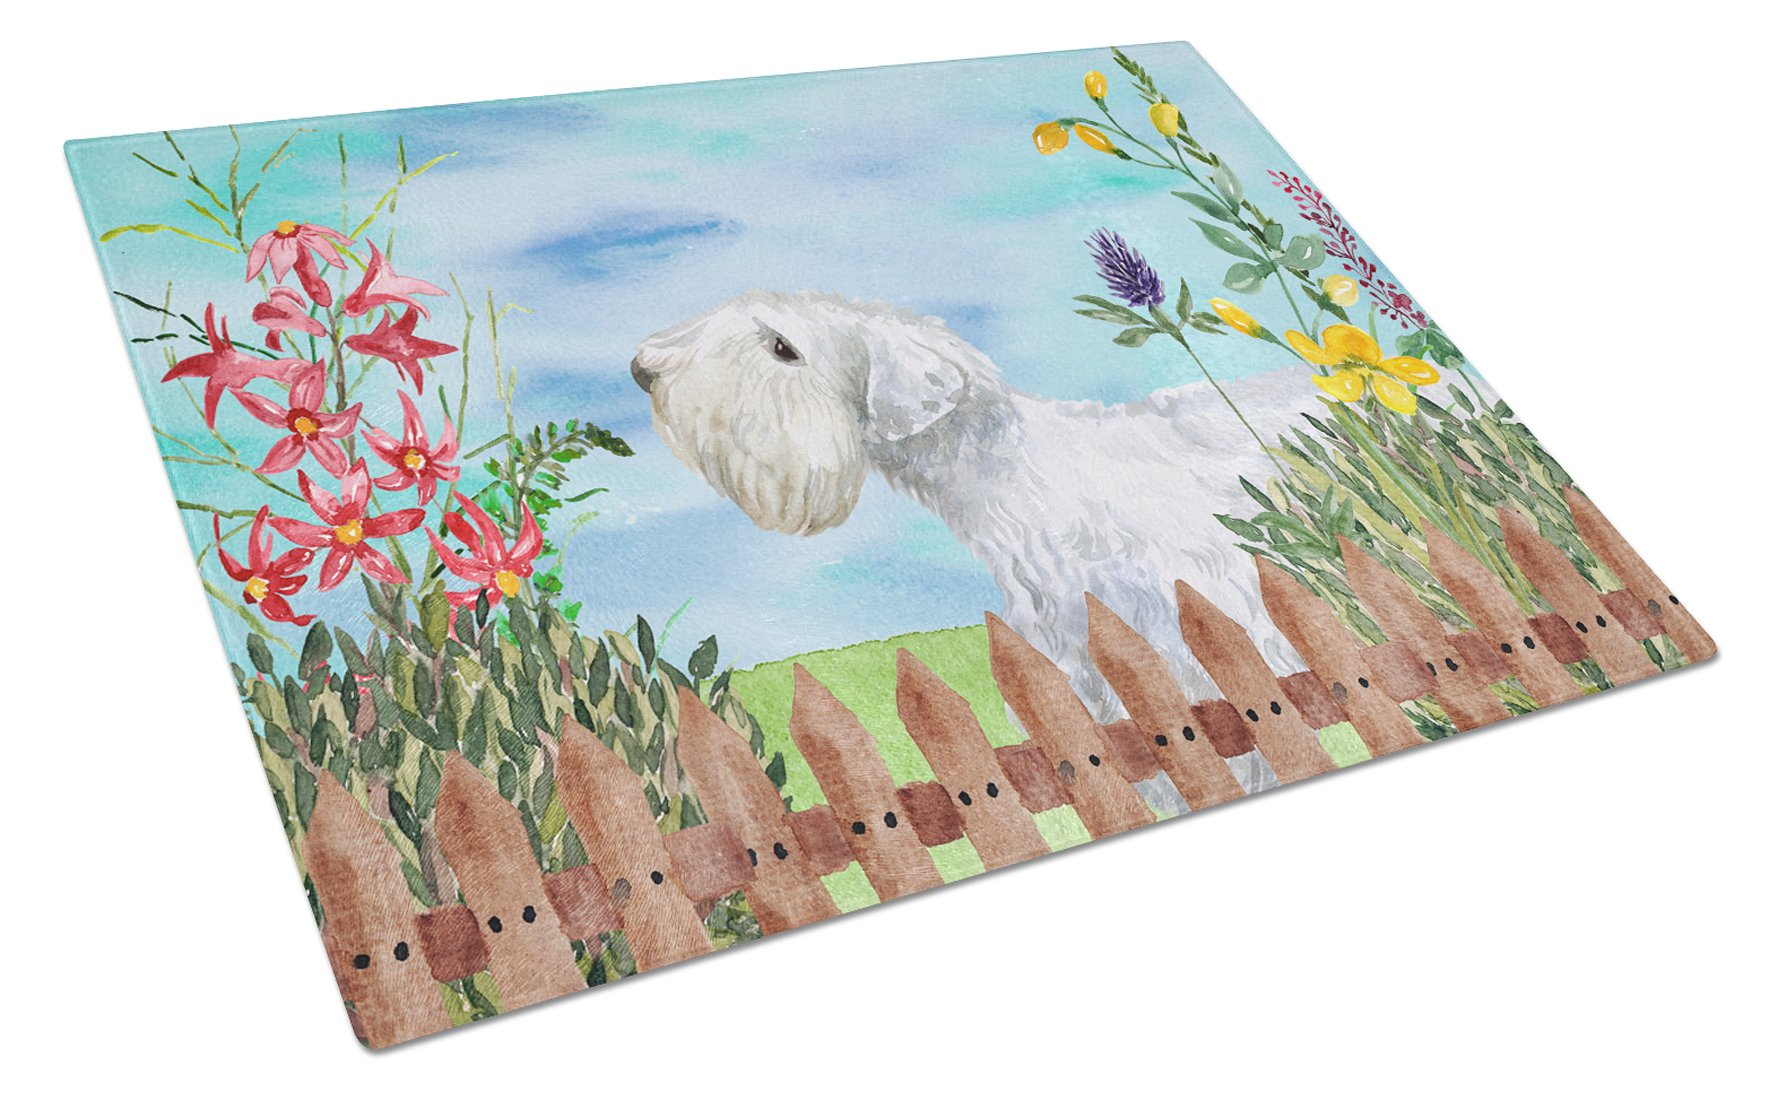 Sealyham Terrier Spring Glass Cutting Board Large CK1246LCB by Caroline's Treasures